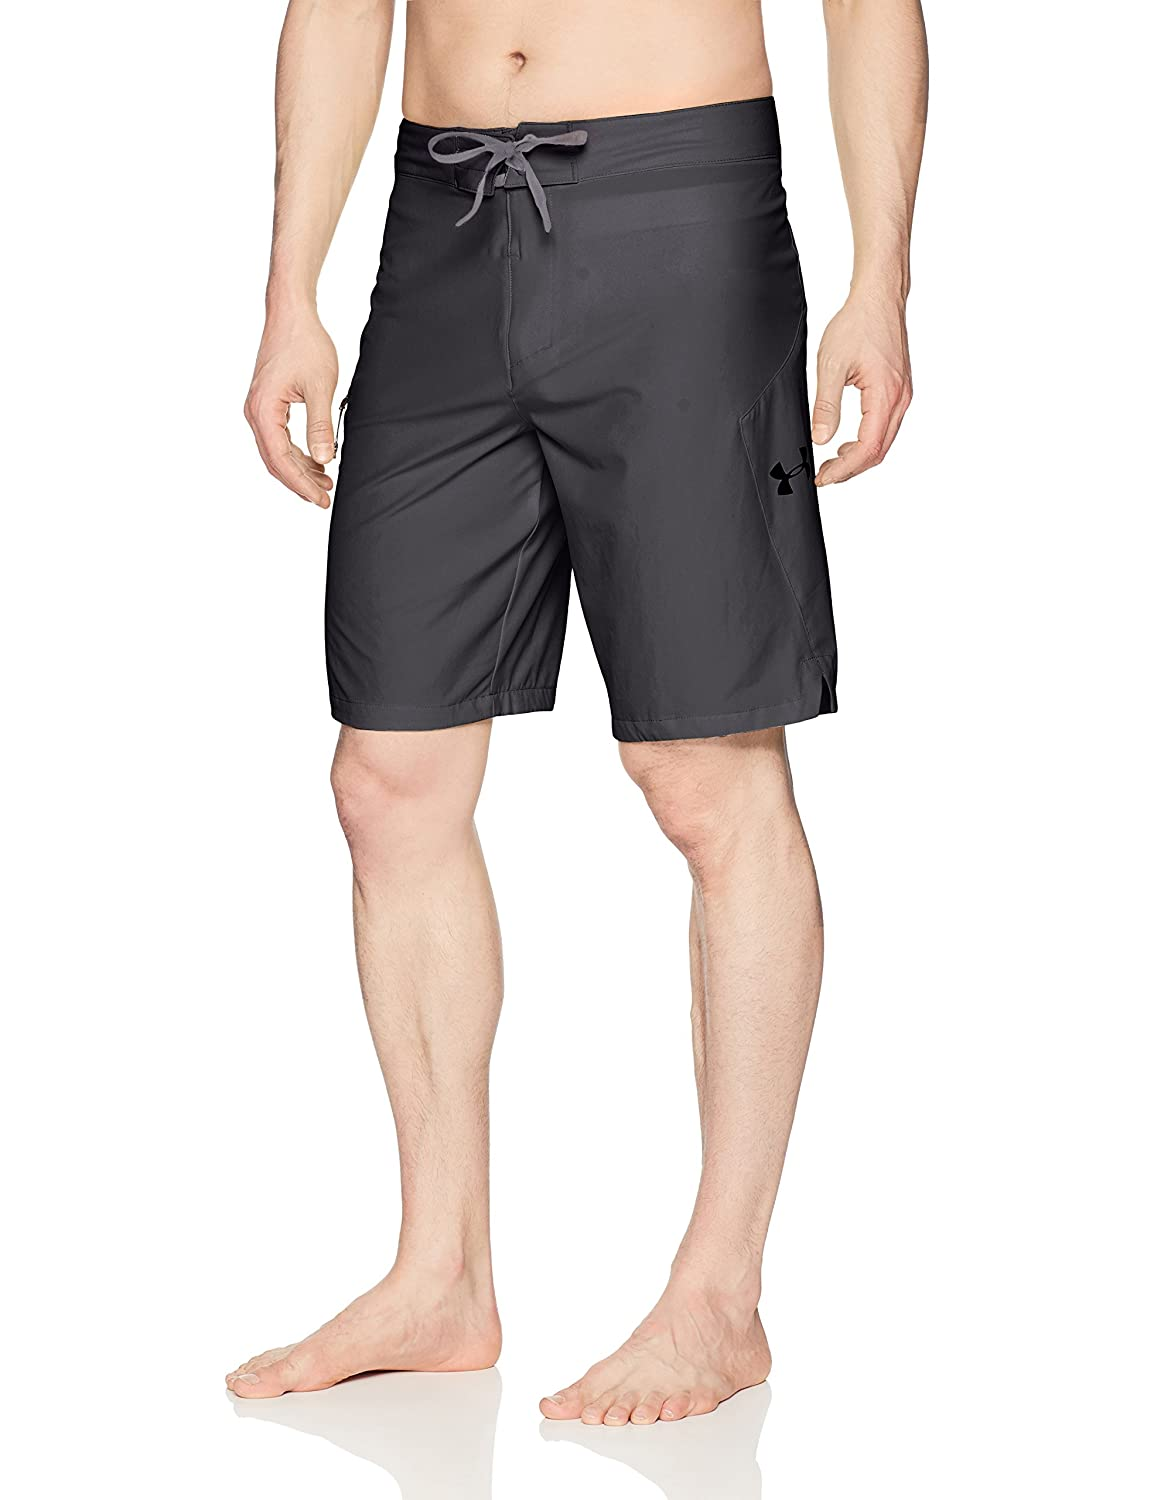 Under Armour Mens Stretch Boardshorts Under Armour Apparel 1290505